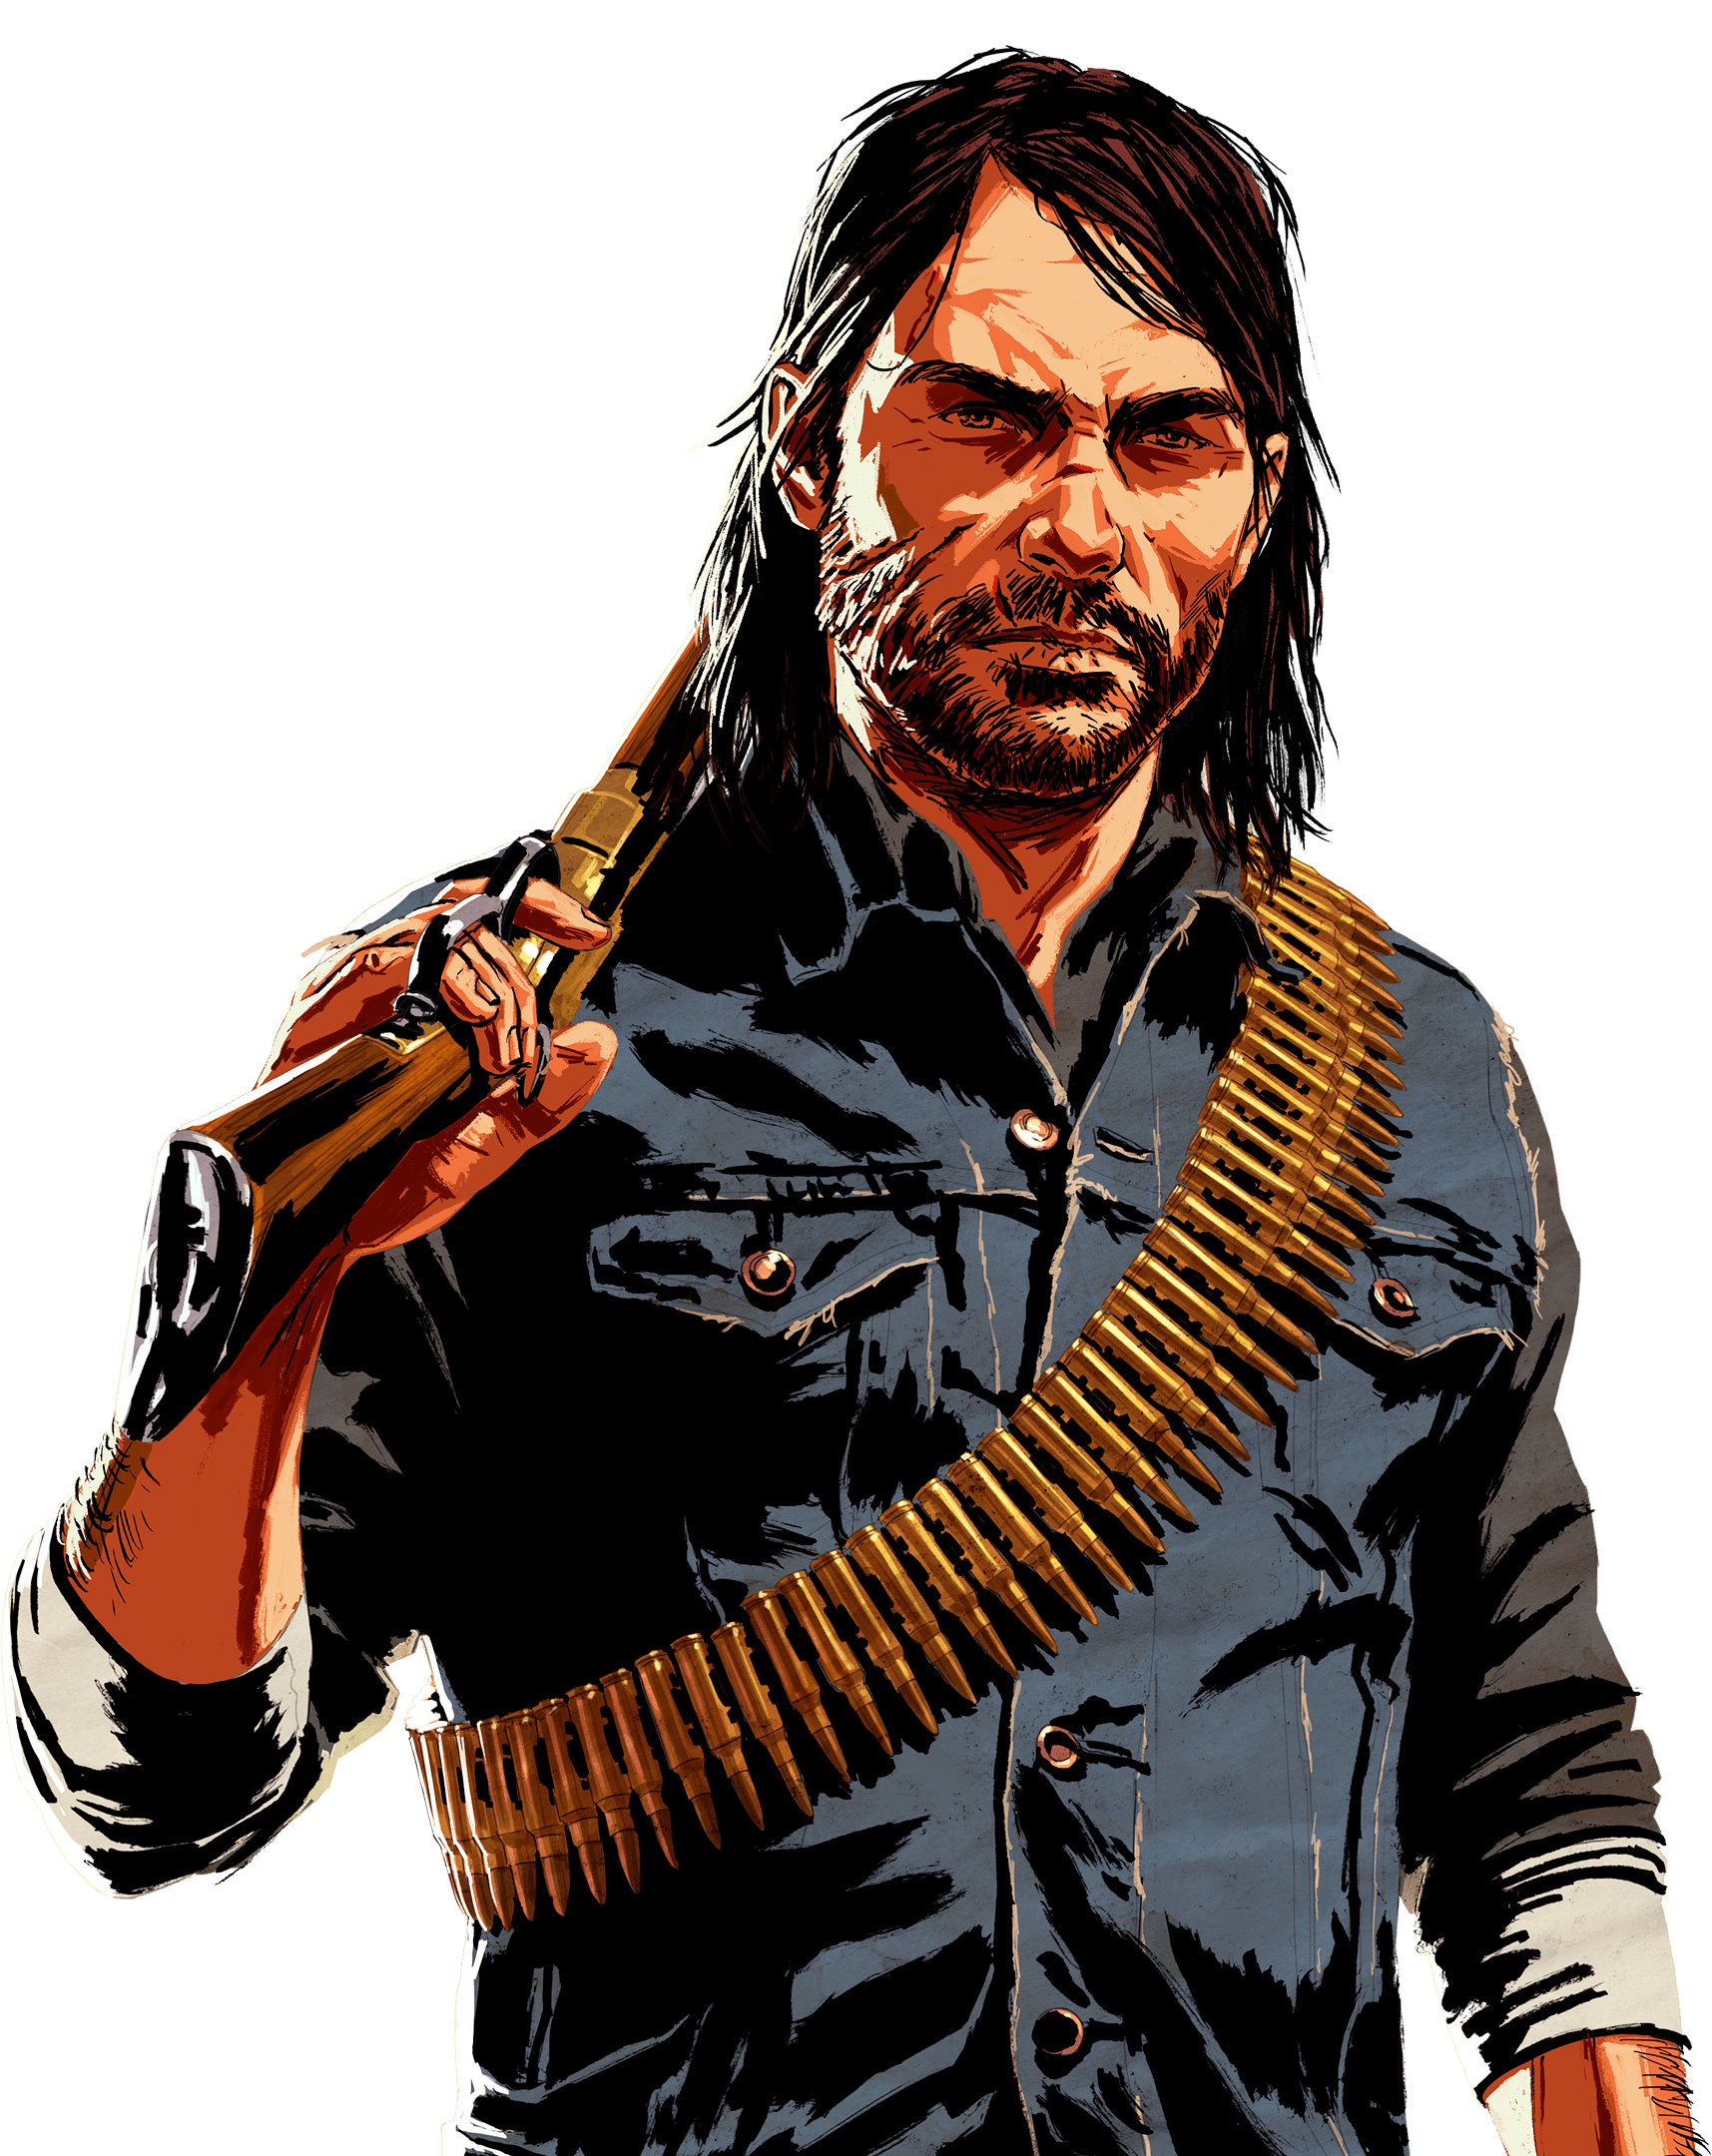 Red dead redemption 2 png. Renders album on imgur